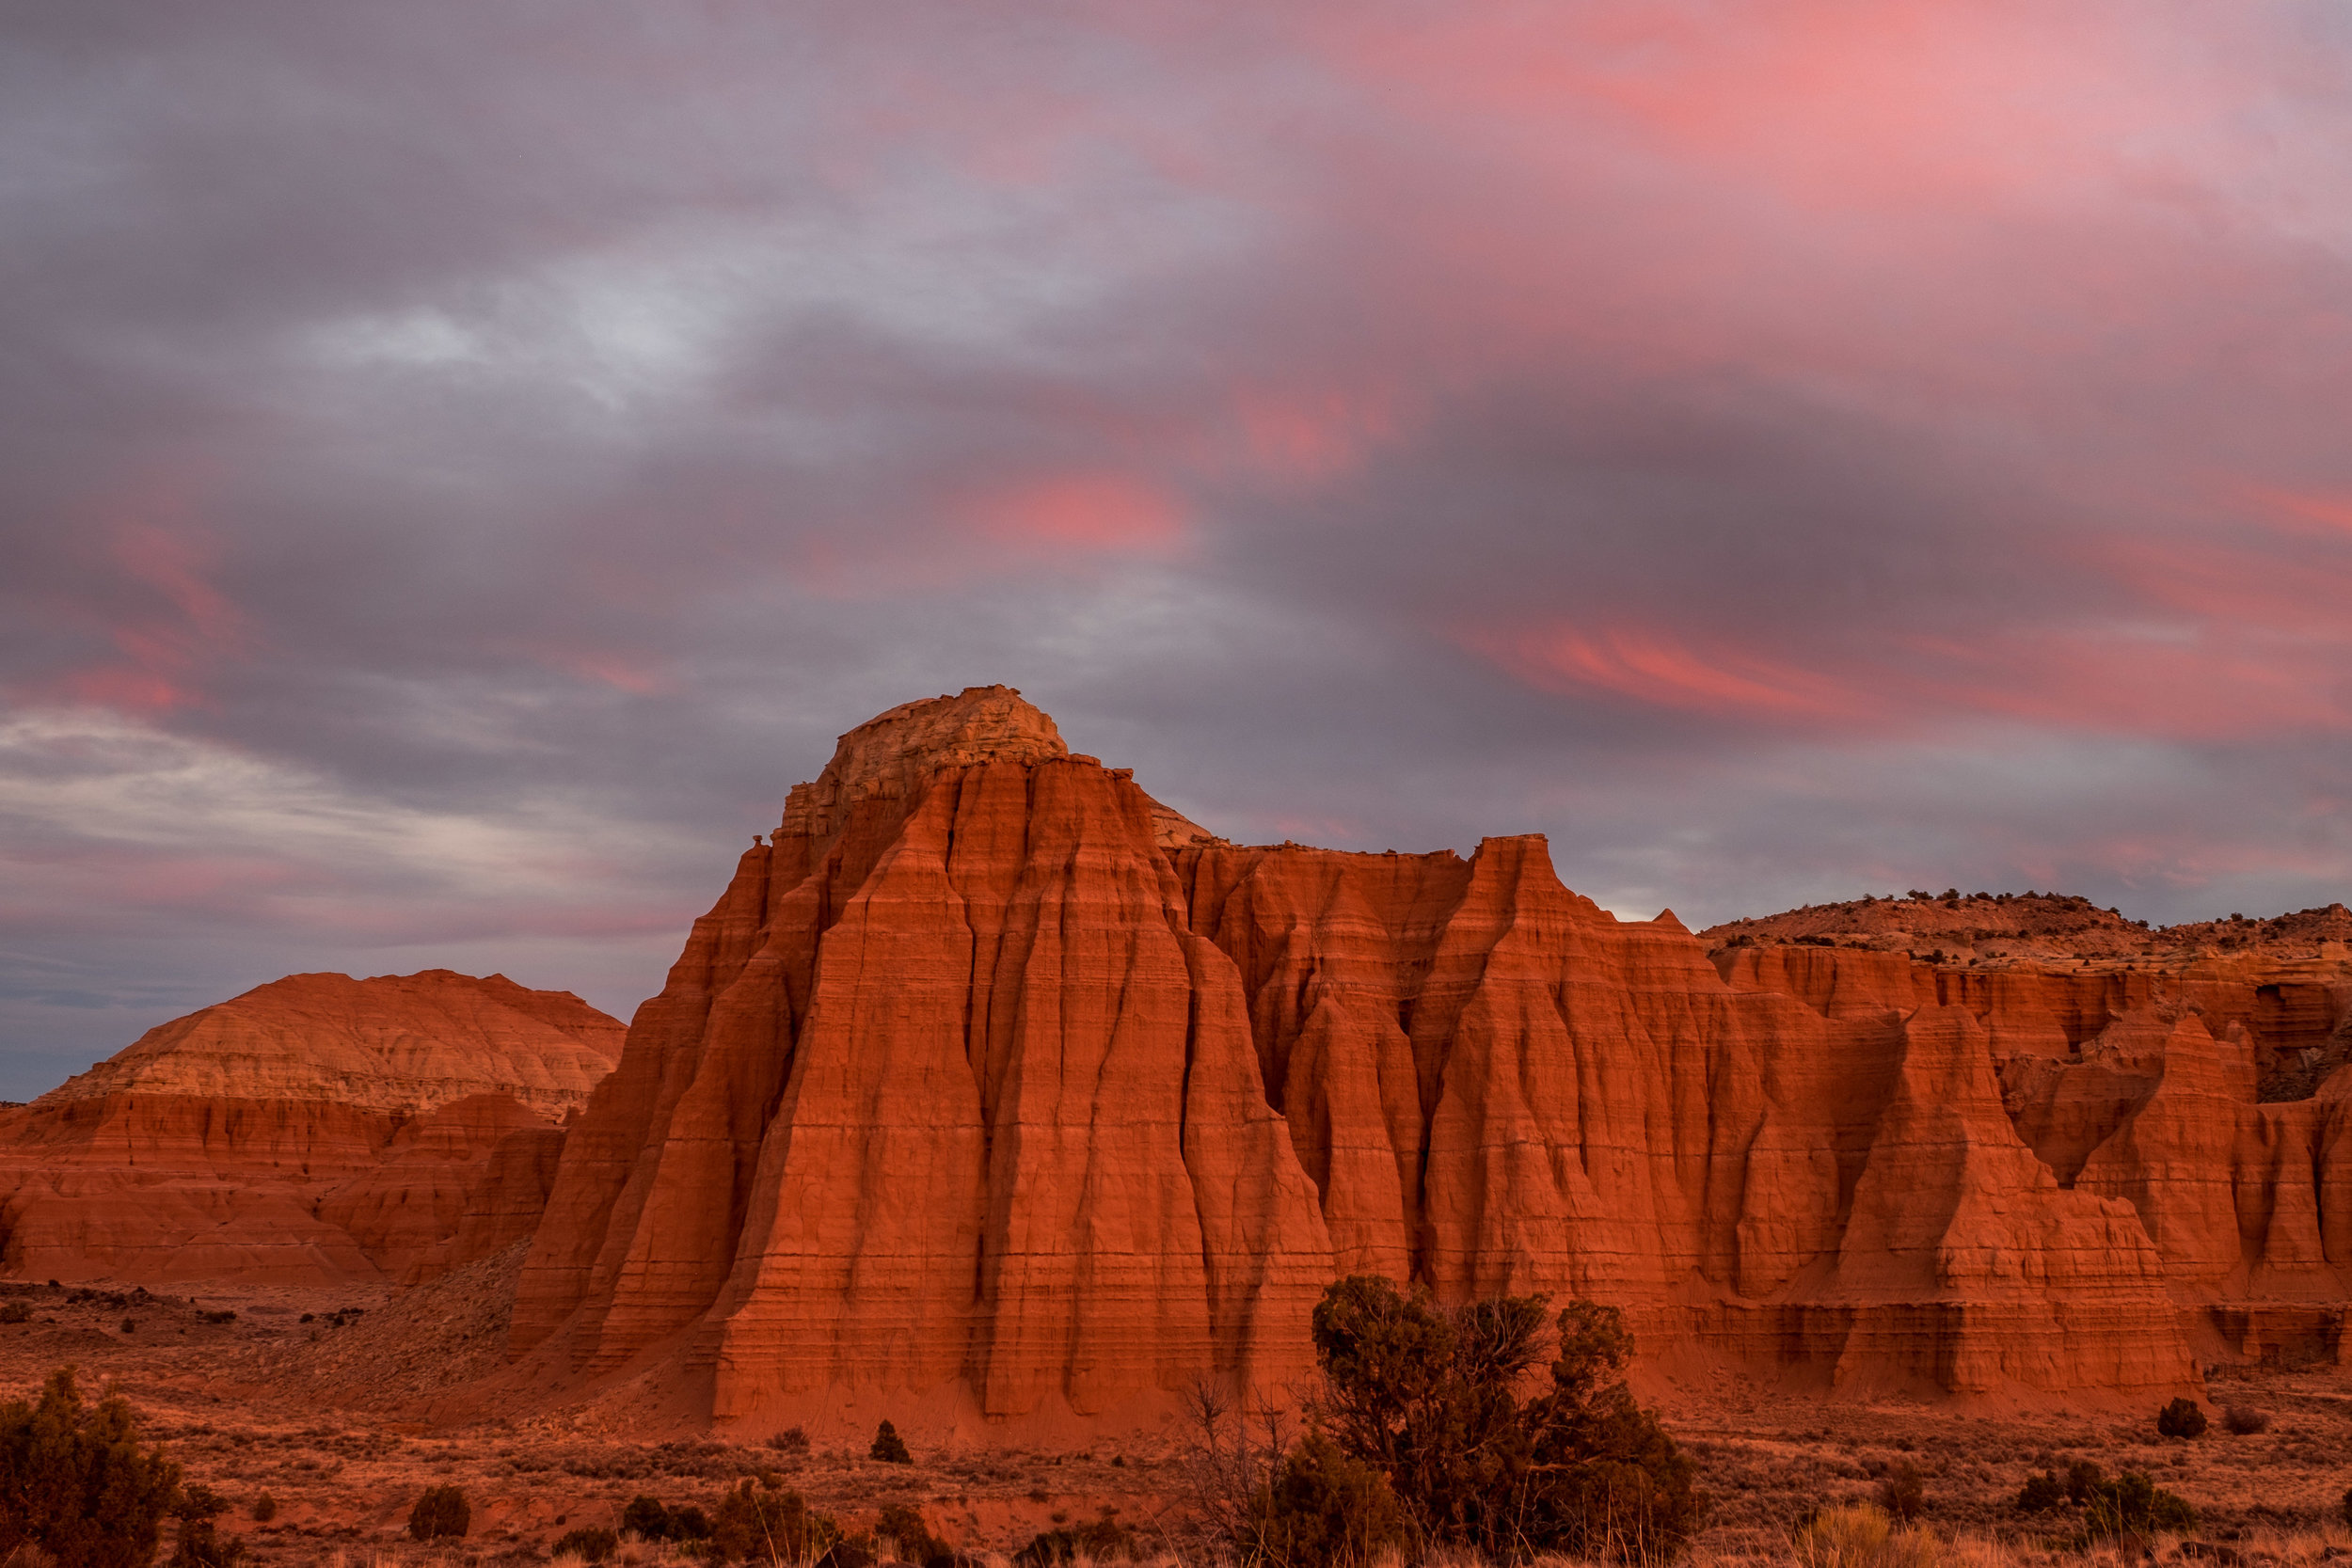 Red rock in the crepescule of a richly colored November night.